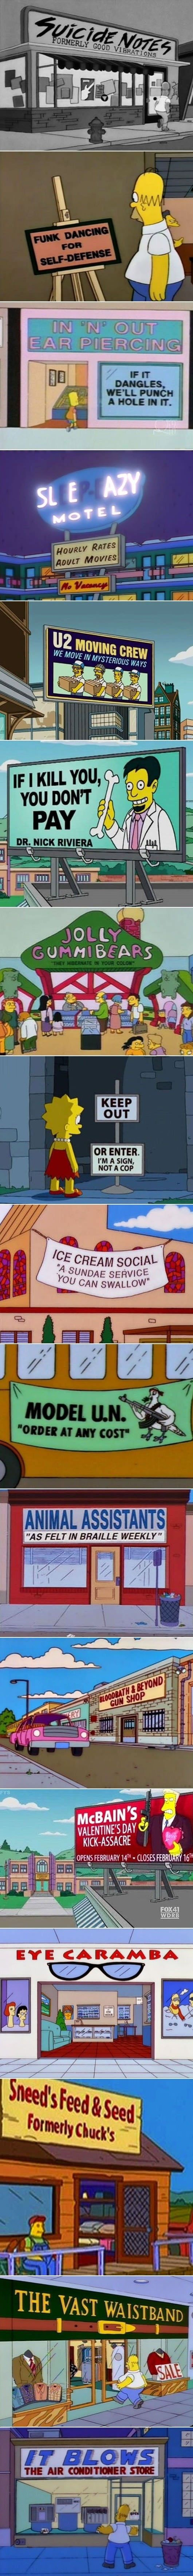 """Signs from The Simpsons - Imgur. Fave one: """"If it Dangles, we'll punch a hole in it"""" for the ear piercing joint."""